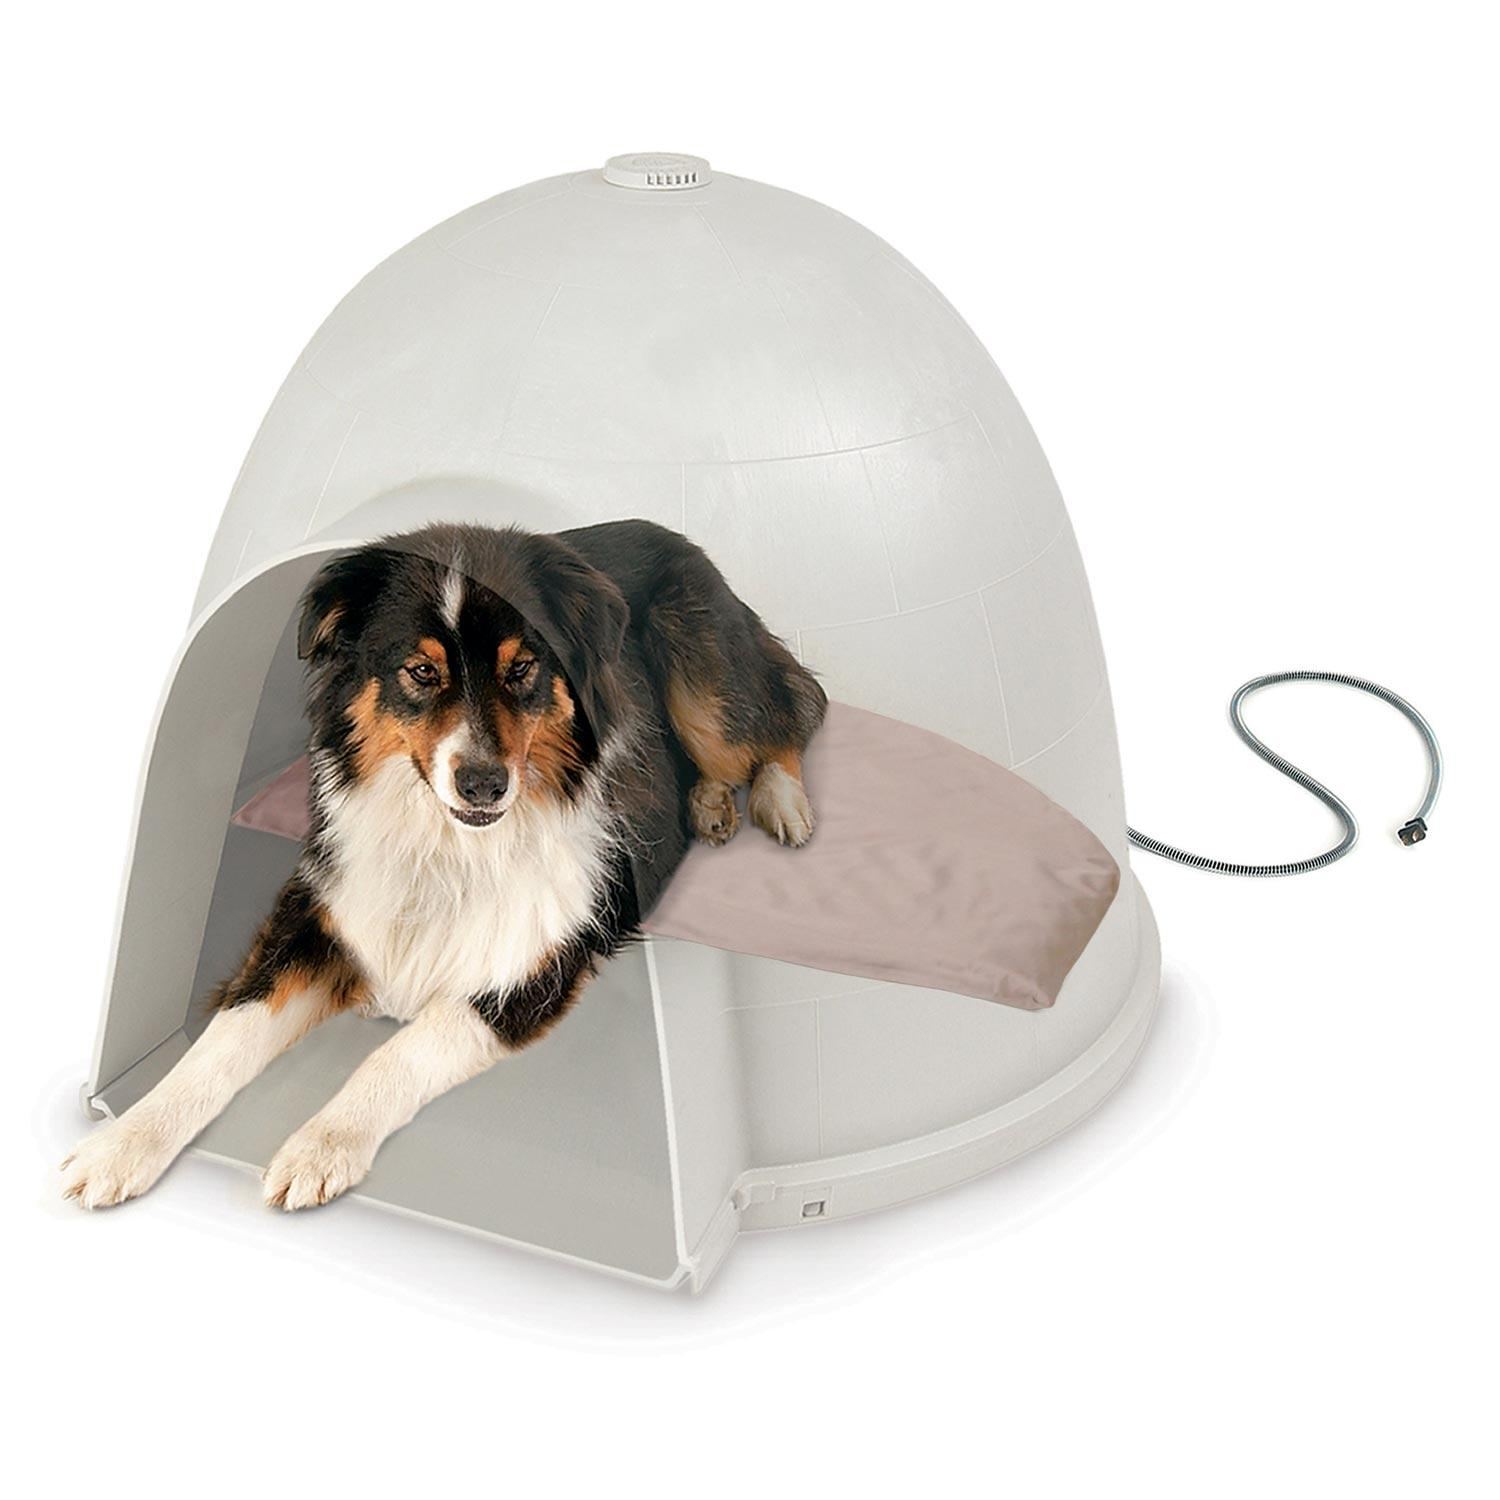 Amazoncom Kh Pet Products Lectro Soft Igloo Style Outdoor Heated